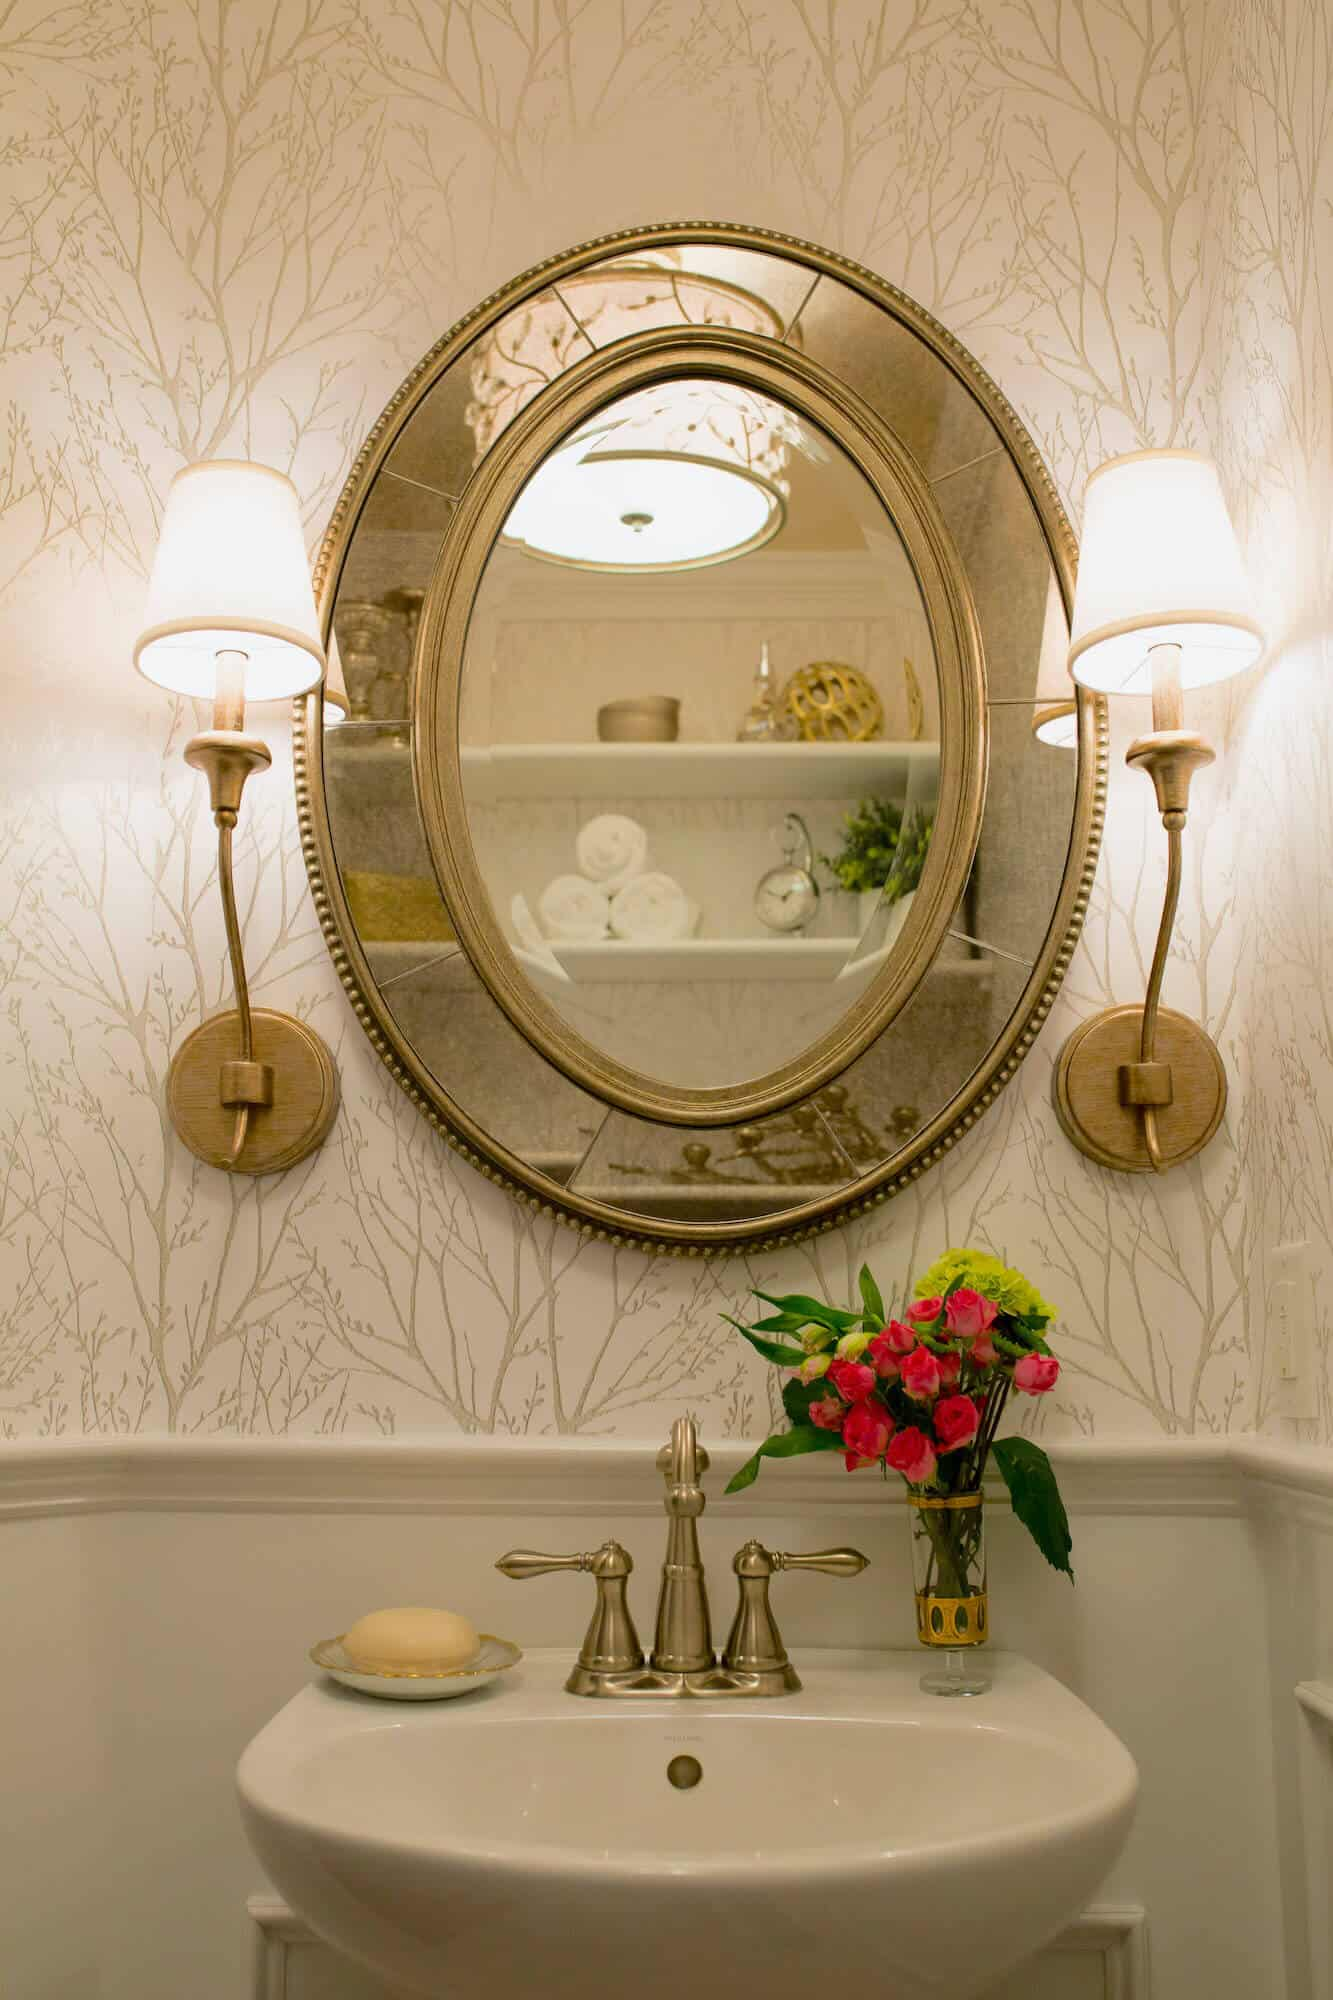 gold mirror on bathroom wall with sconces and graphic wallpaper